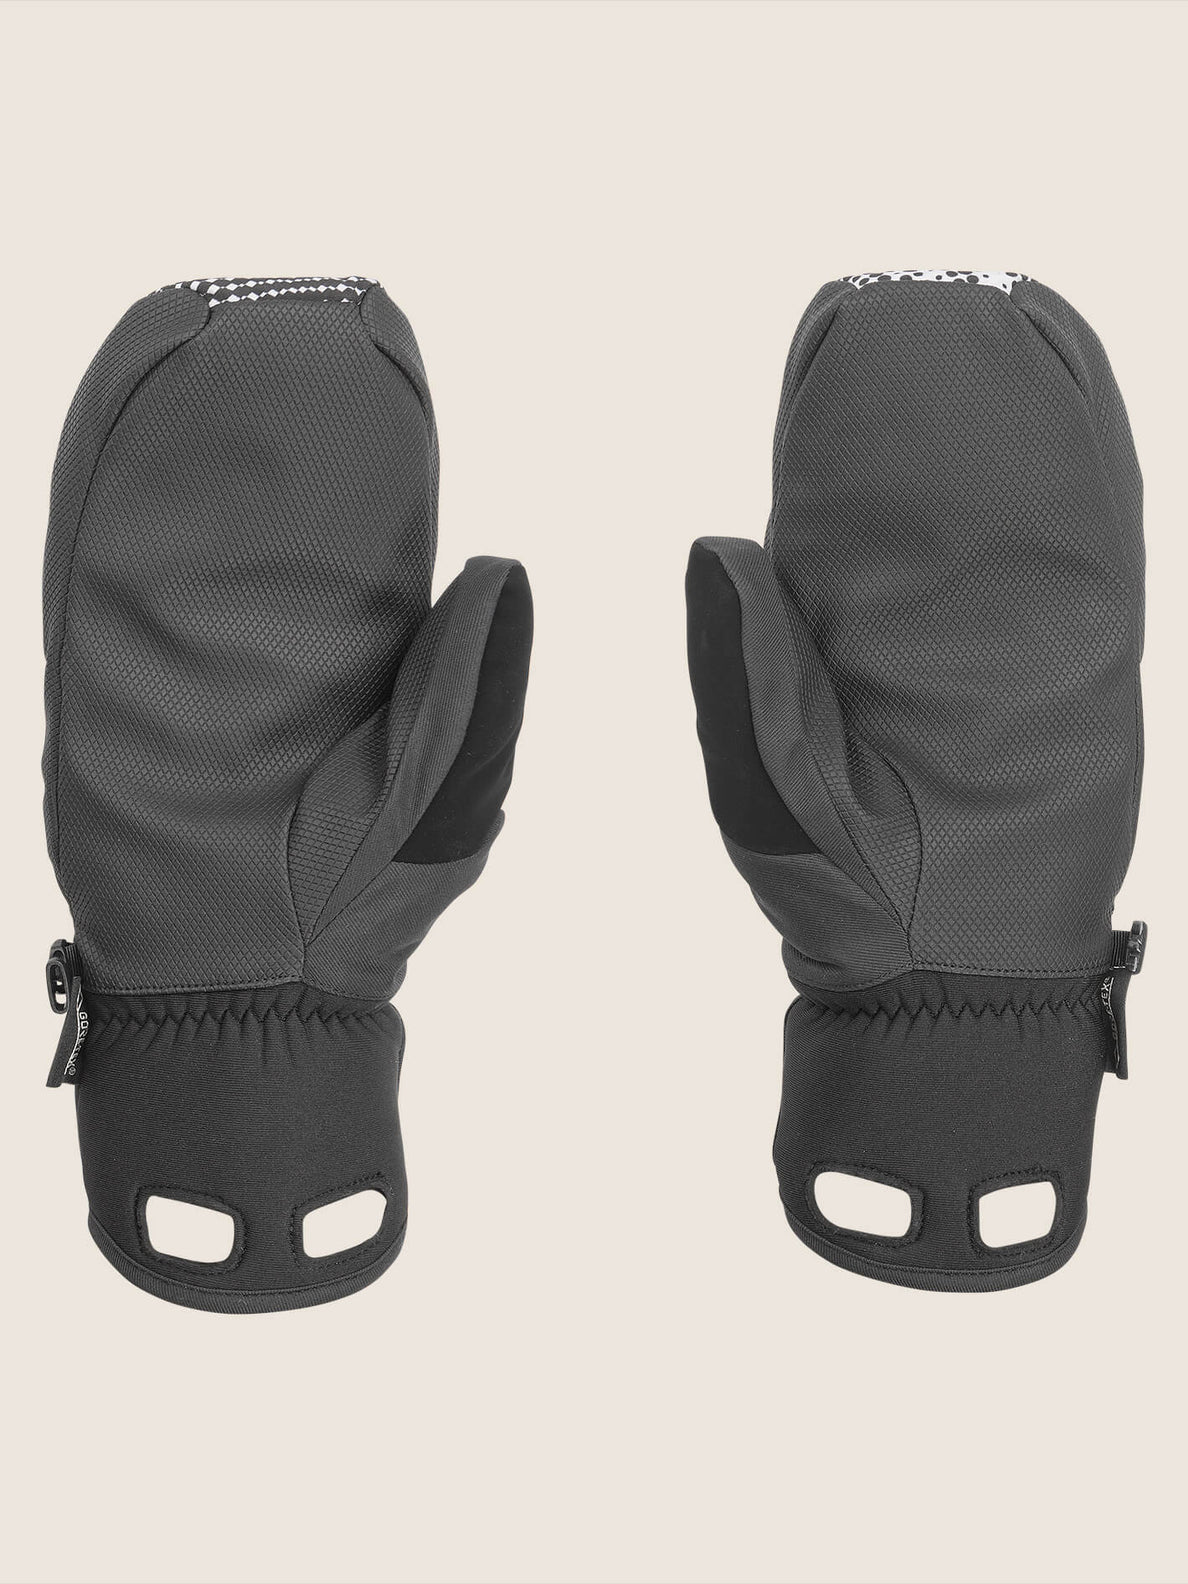 Stay Dry Gore-tex Mitt In Black White, Back View